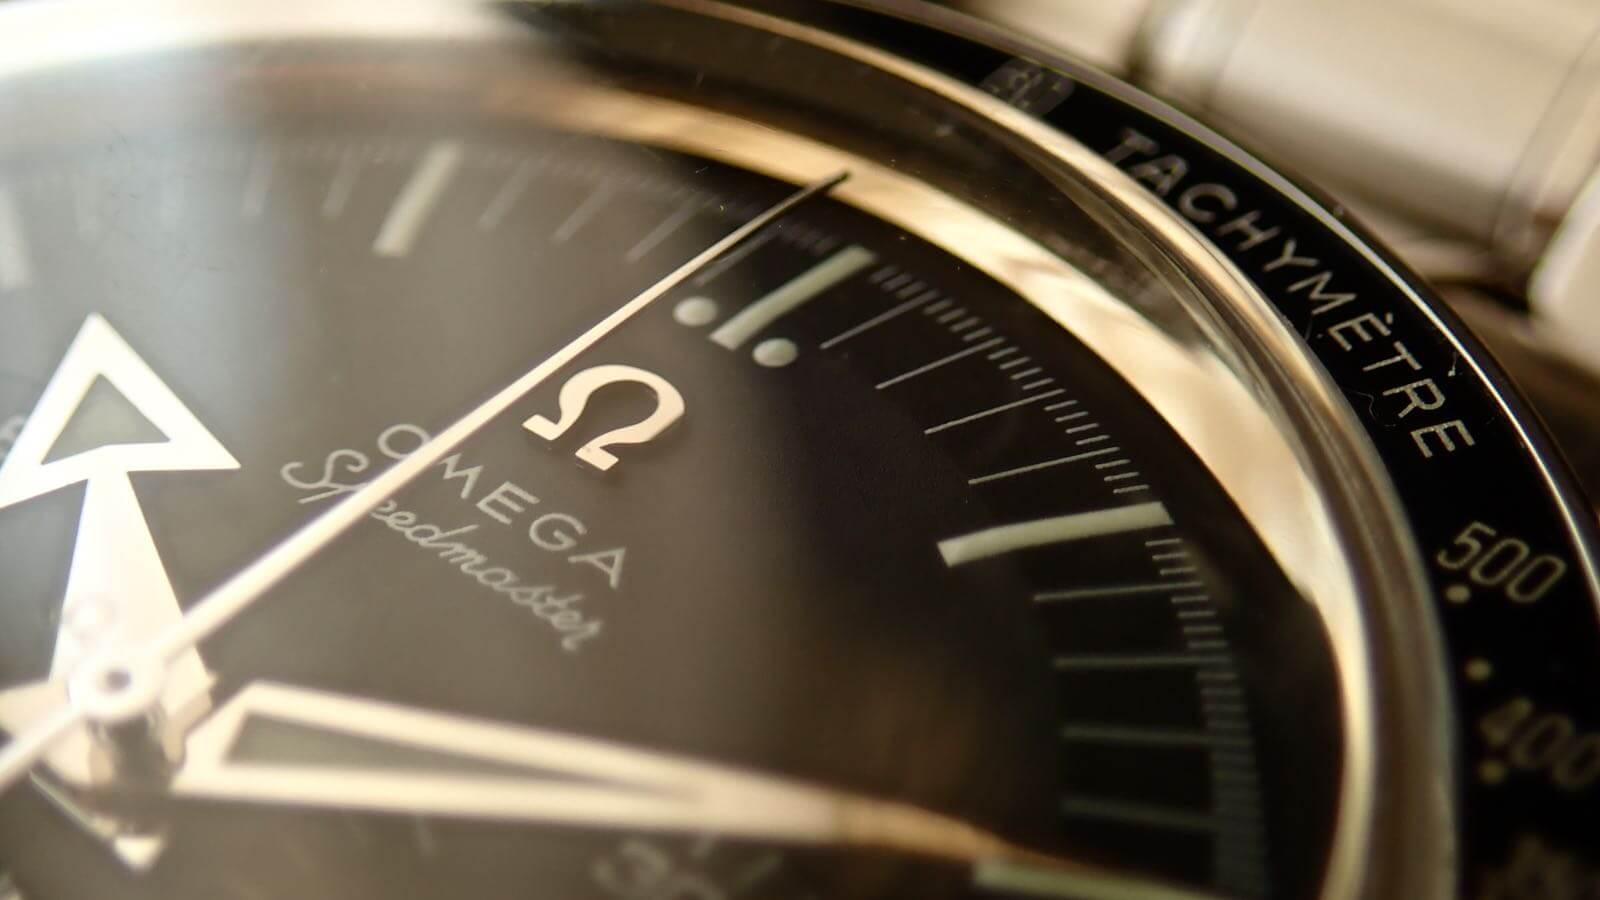 0029 The first watch I went to the moon  Omega Speedmaster story 11